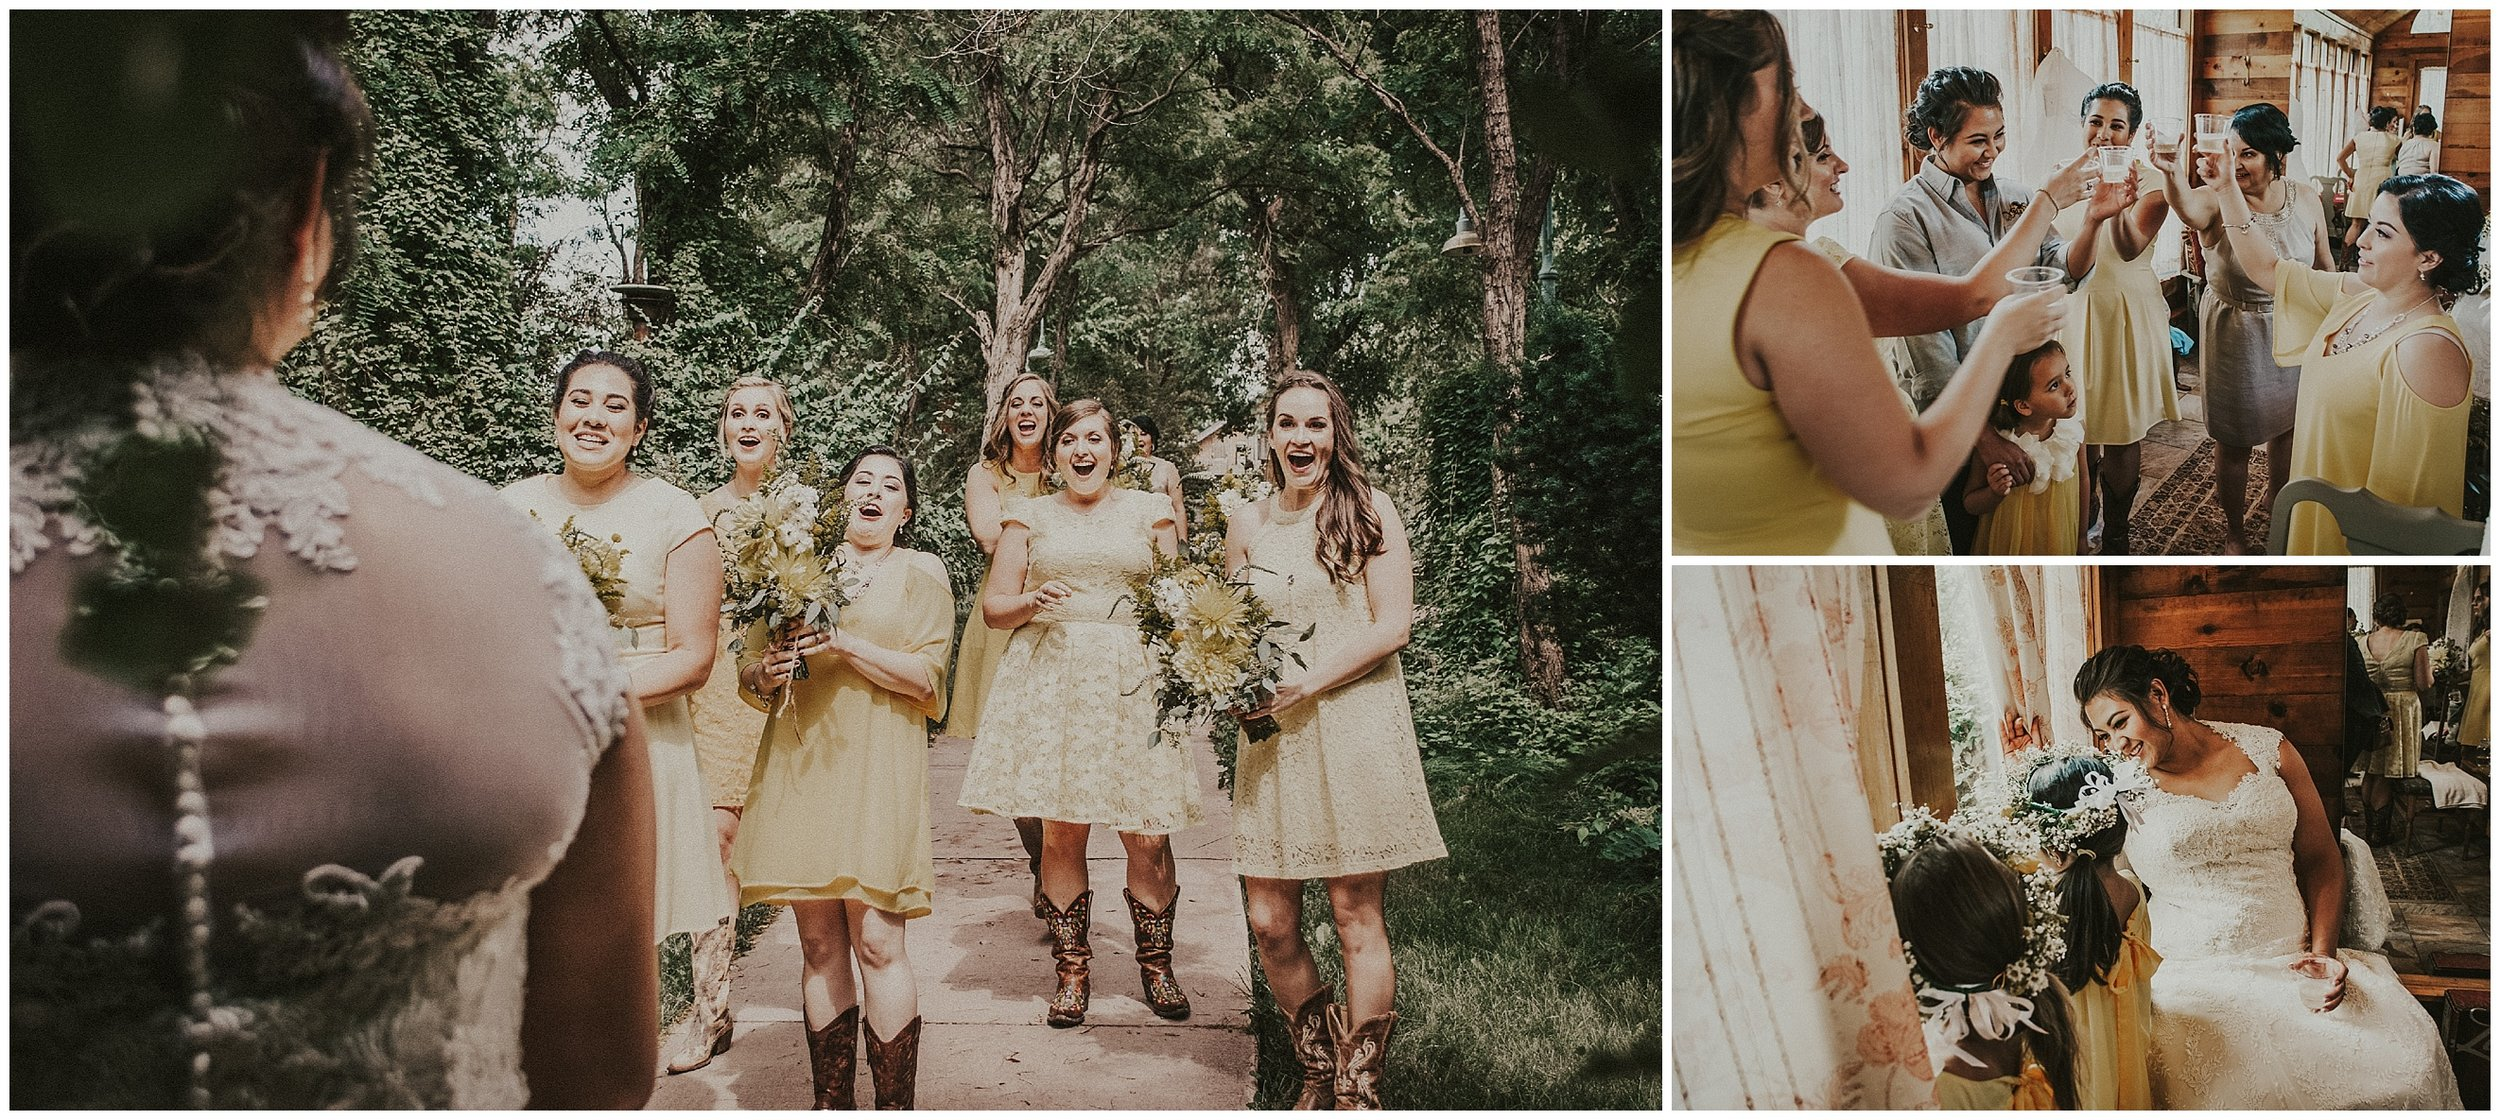 Taylor_Engish_Photography_Colorado_Springs_Wedding6